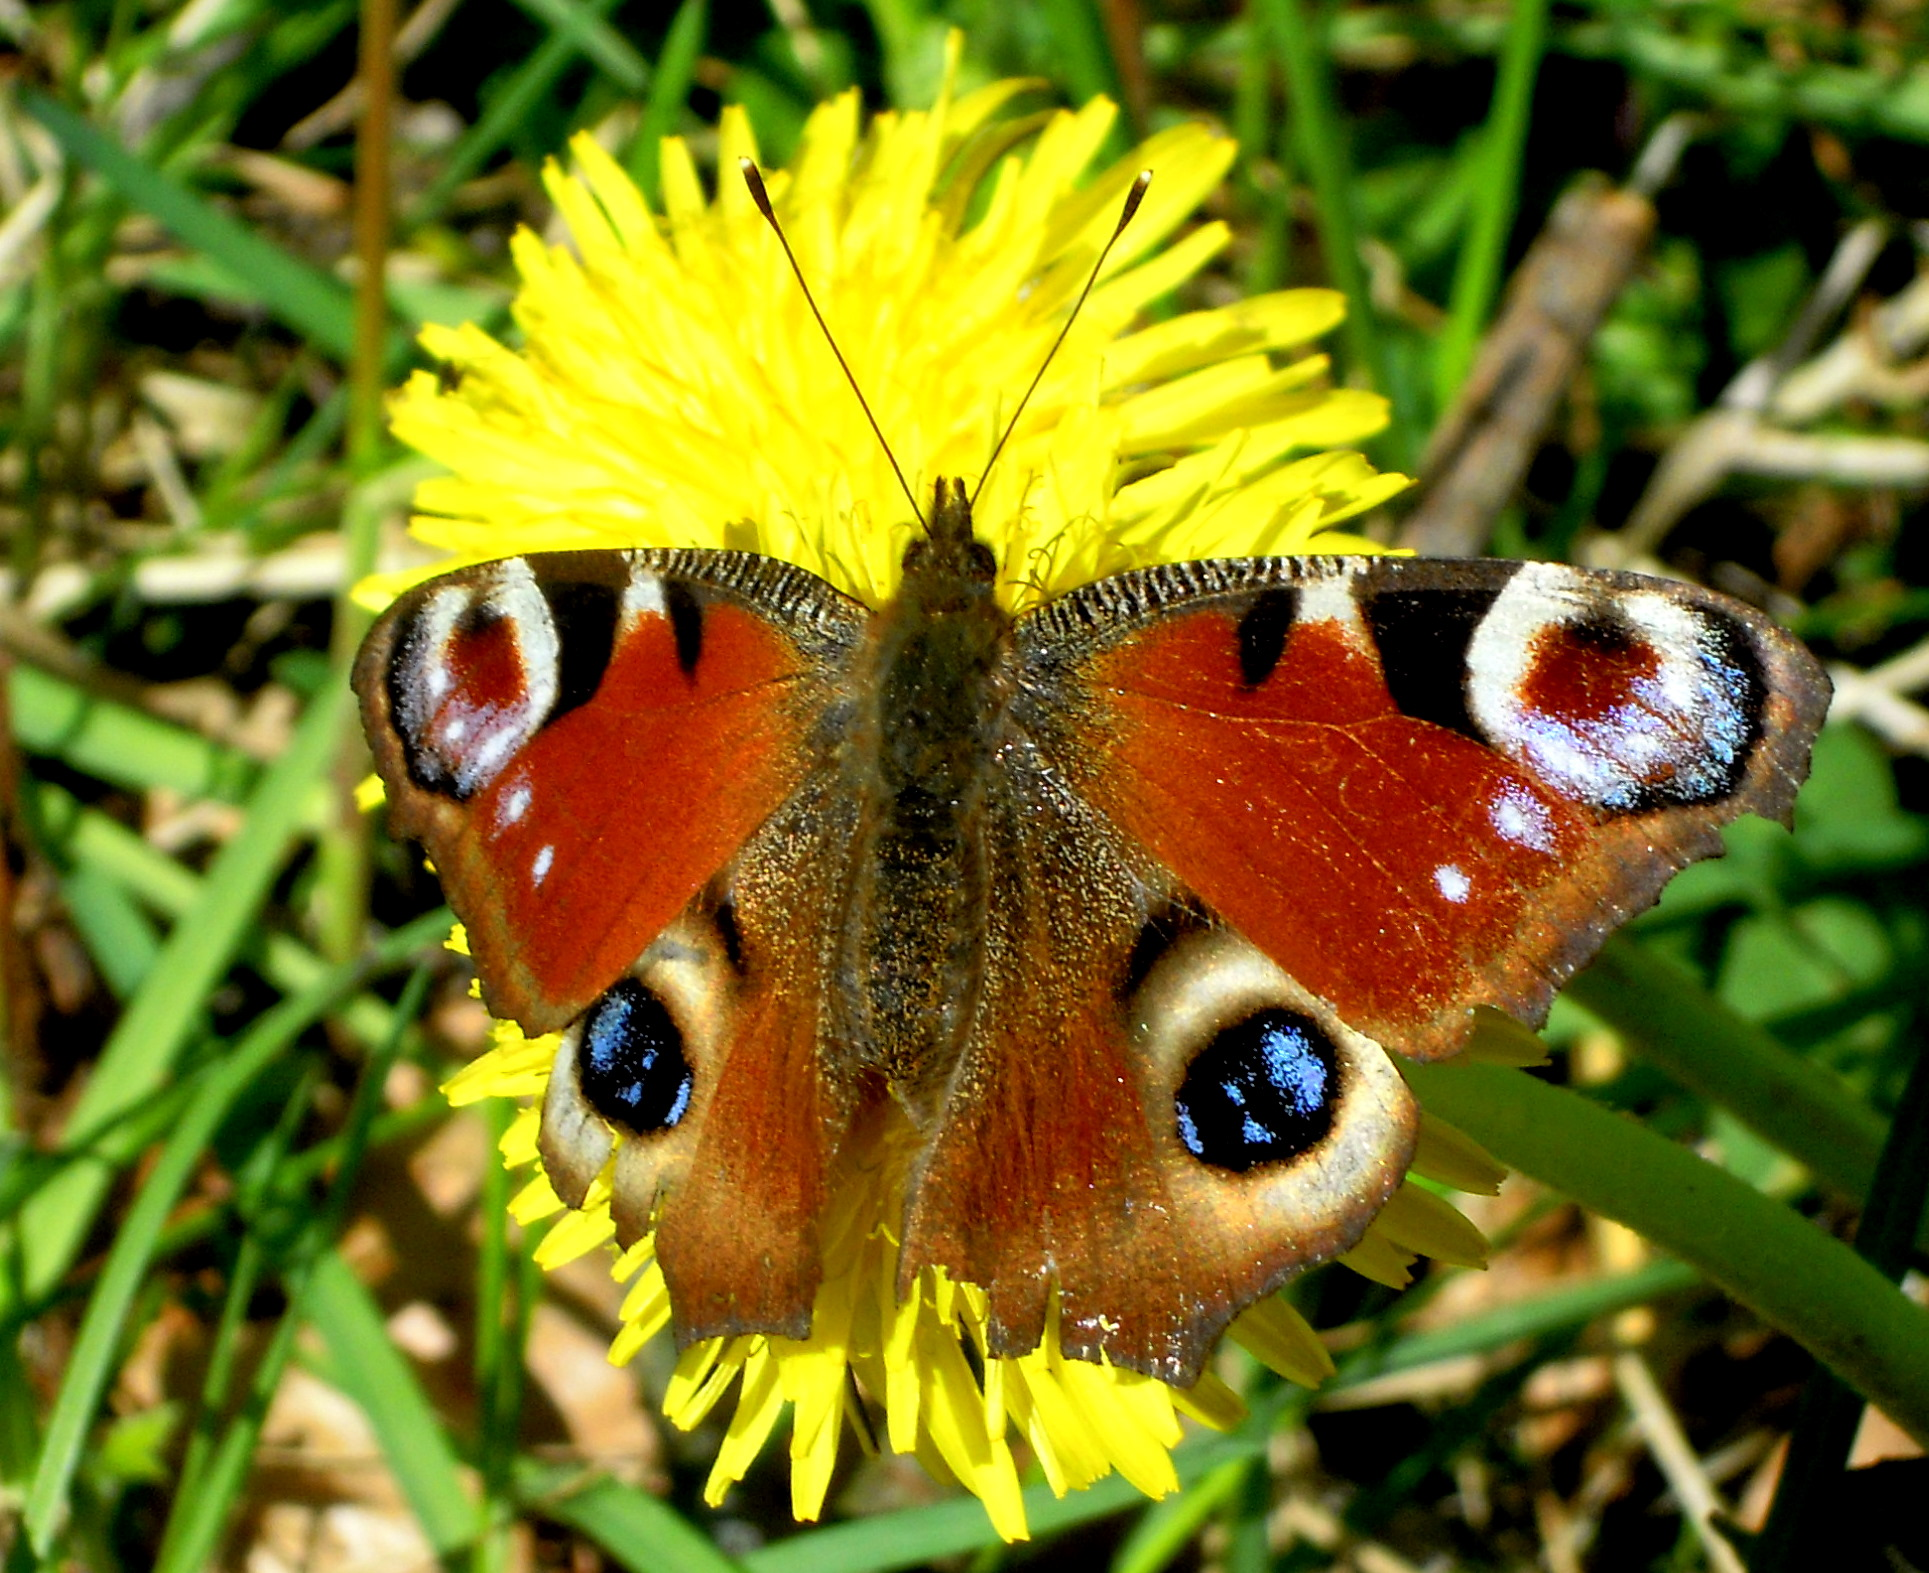 European peacock butterfly (Aglais io); Image ONLY